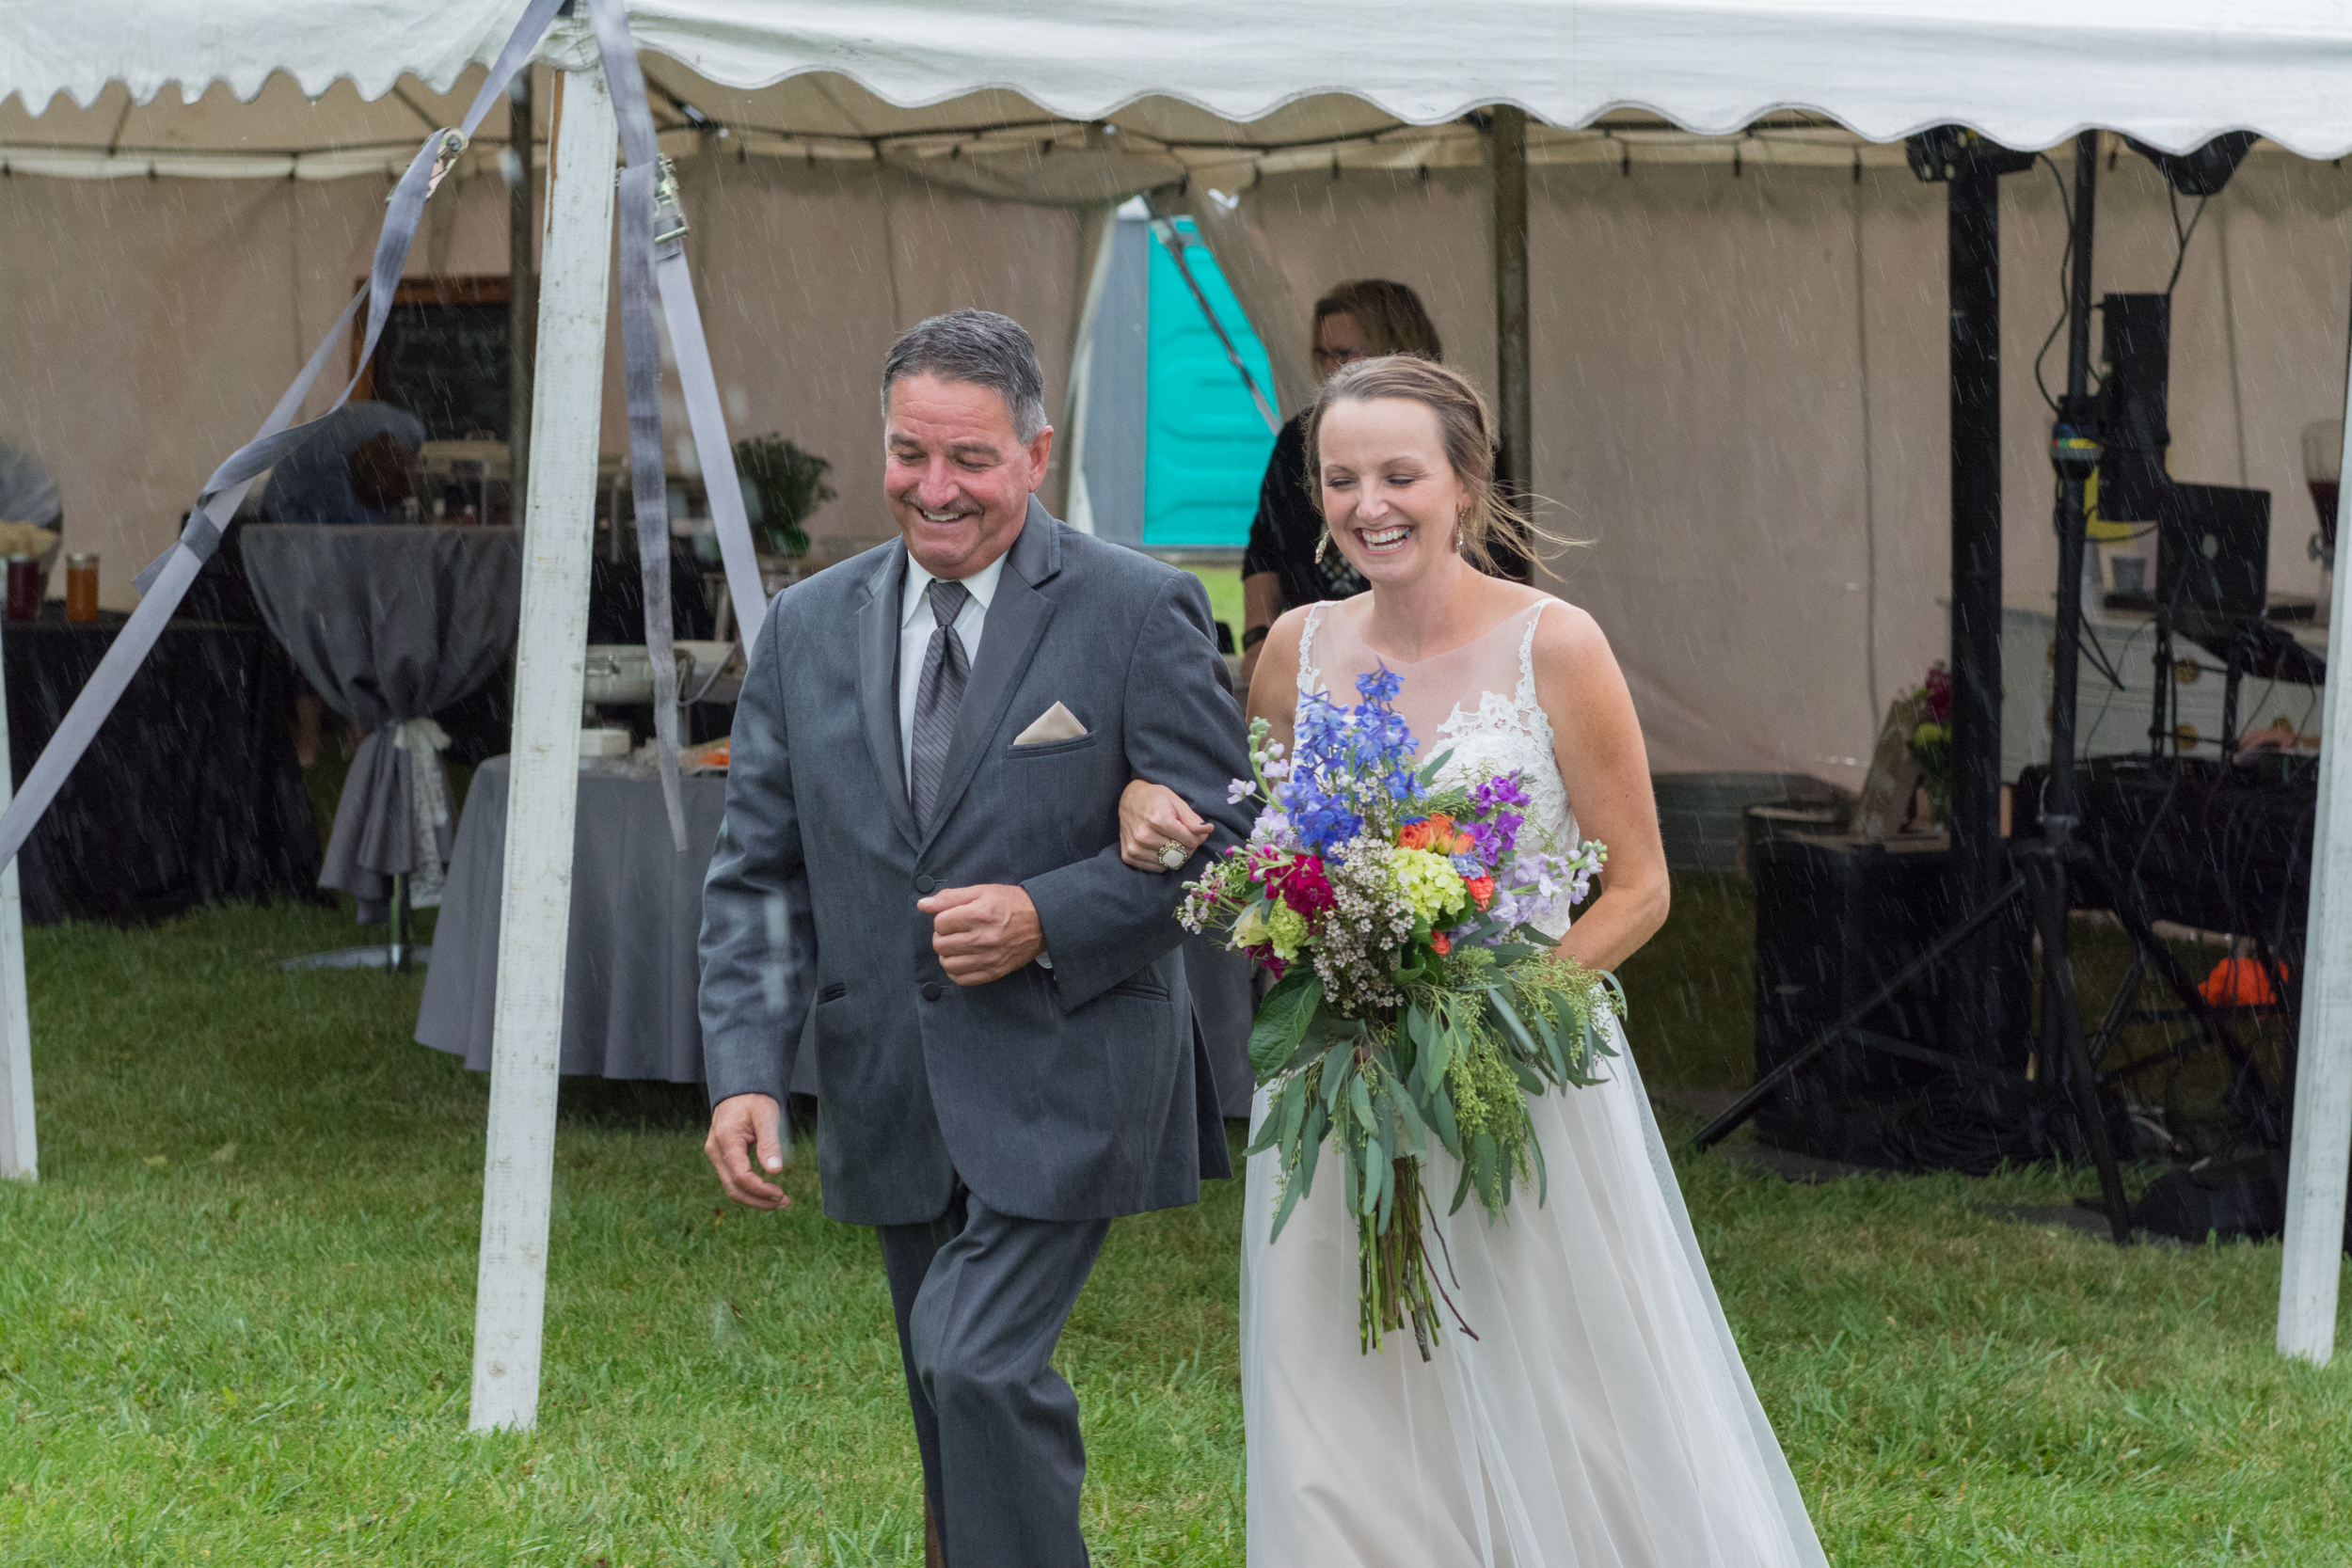 Life_by_pictures_photography dick wedding mount sterling ohio september_9.jpg